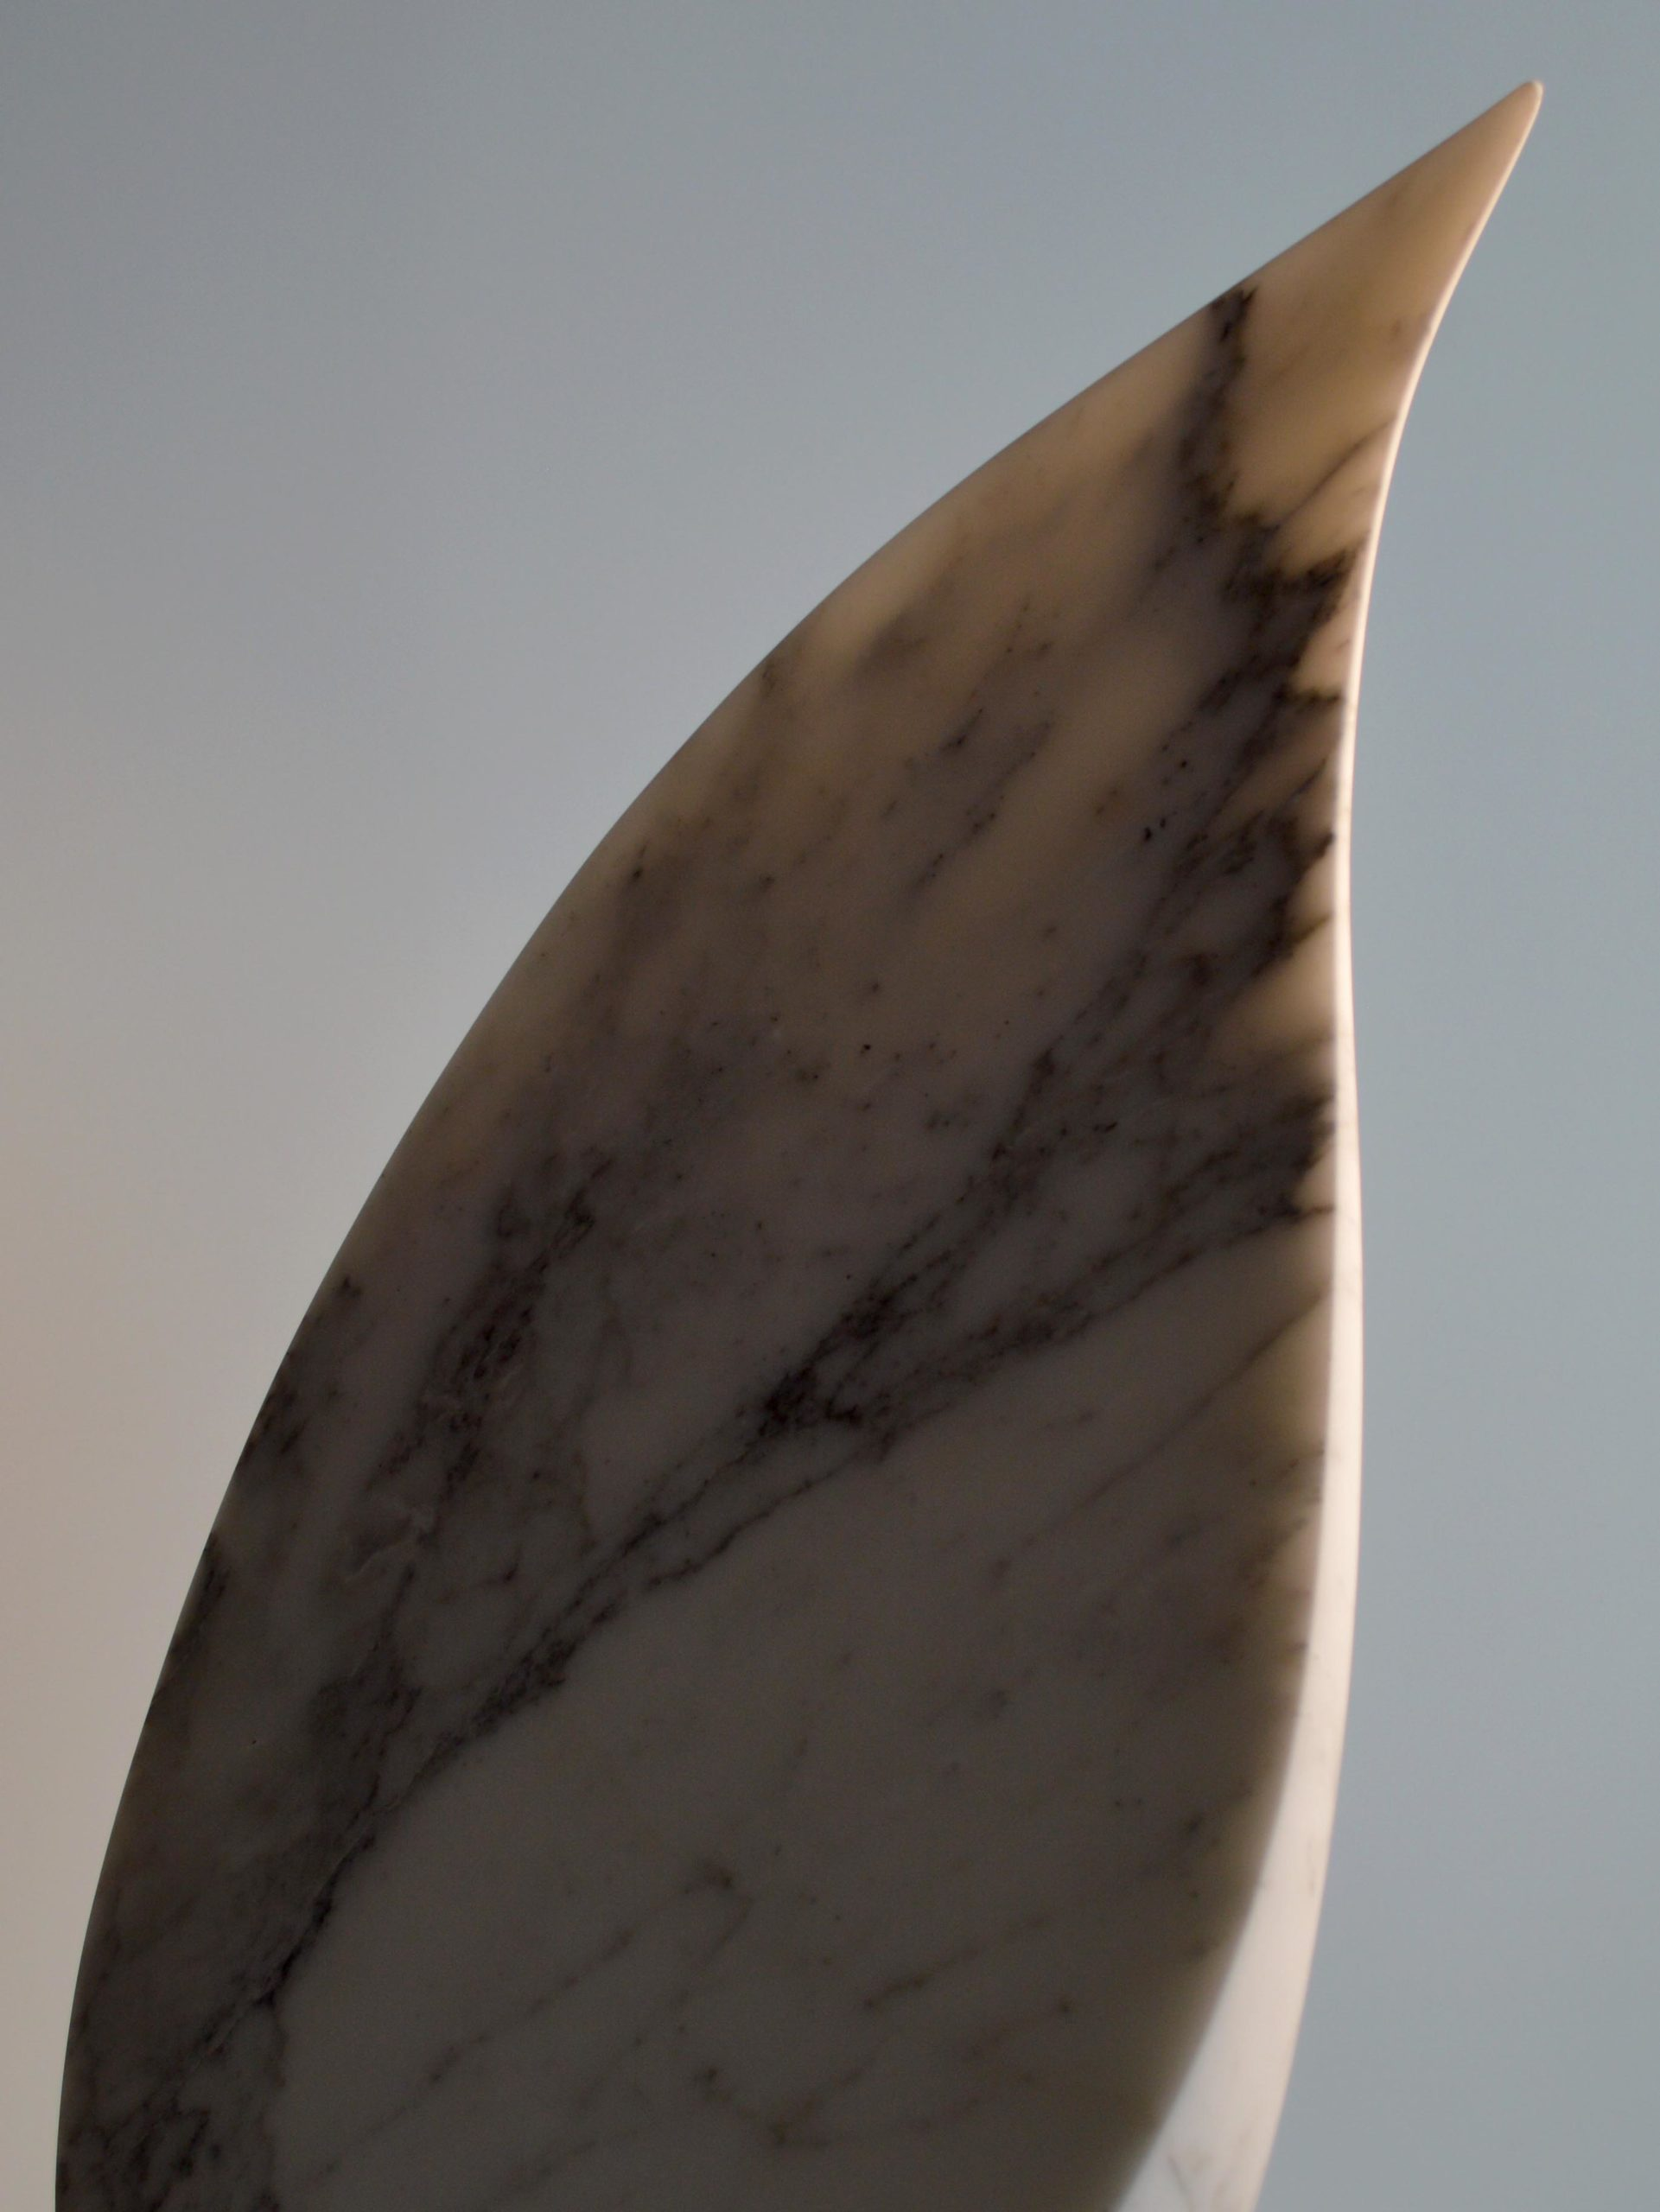 michael binkley sculptor stone sculpture abstract leaves fine art carrara marble vancouver canada